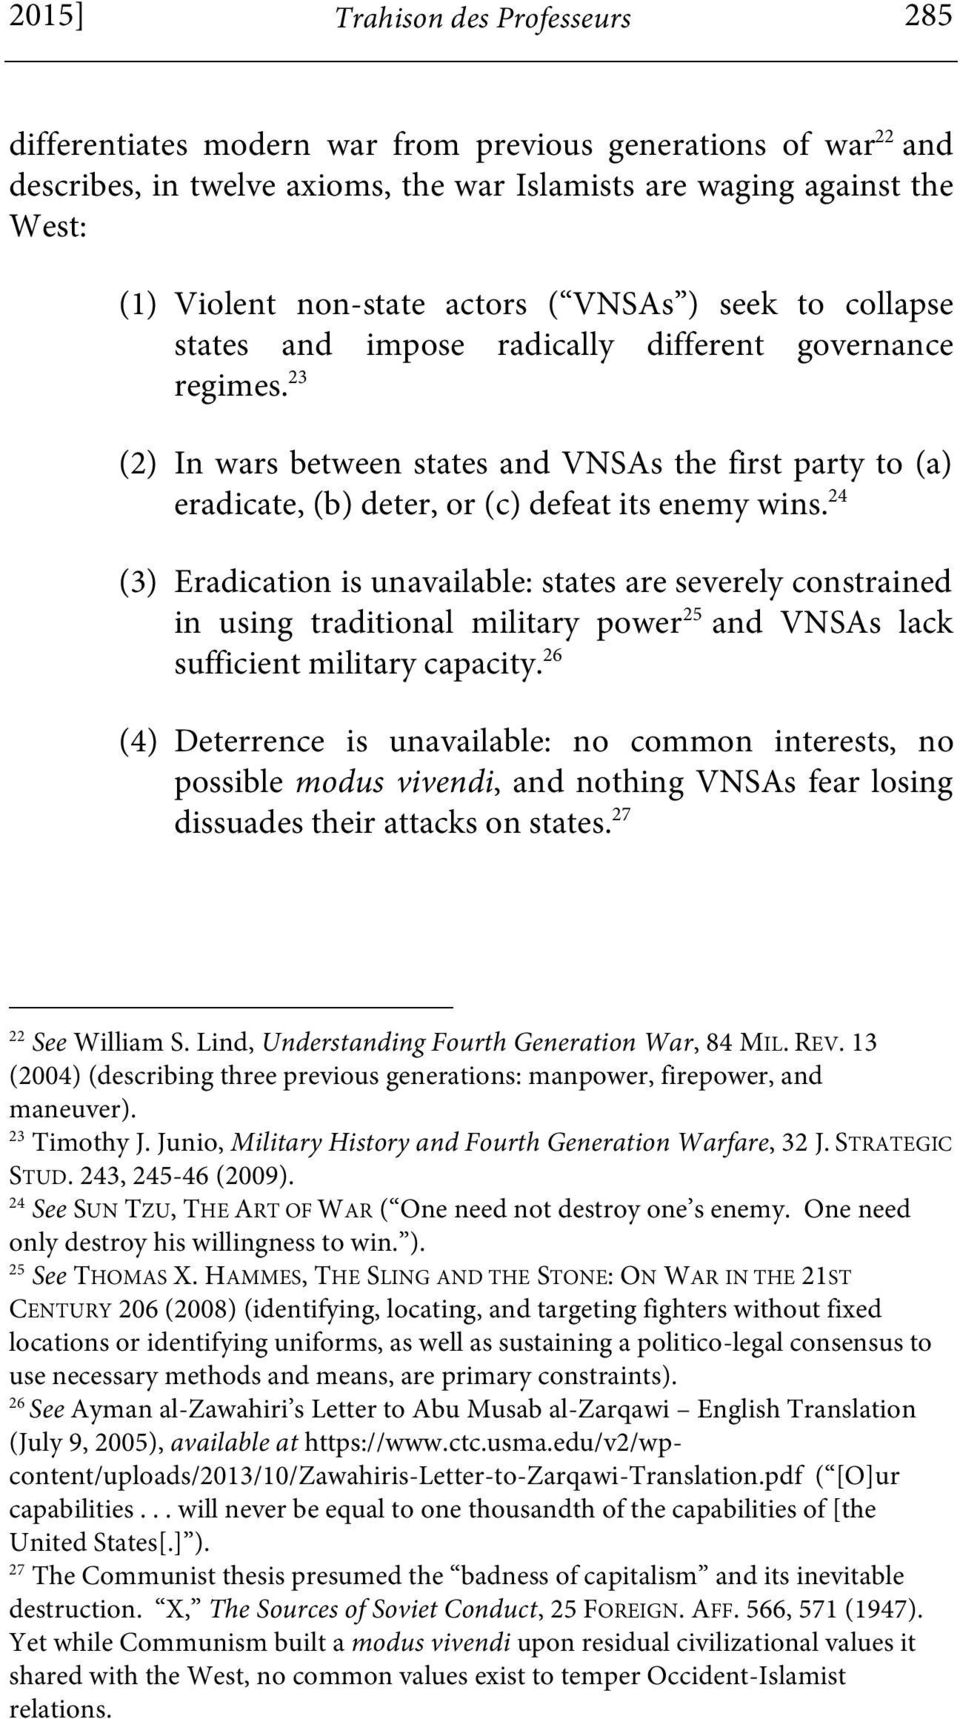 23 (2) In wars between states and VNSAs the first party to (a) eradicate, (b) deter, or (c) defeat its enemy wins.